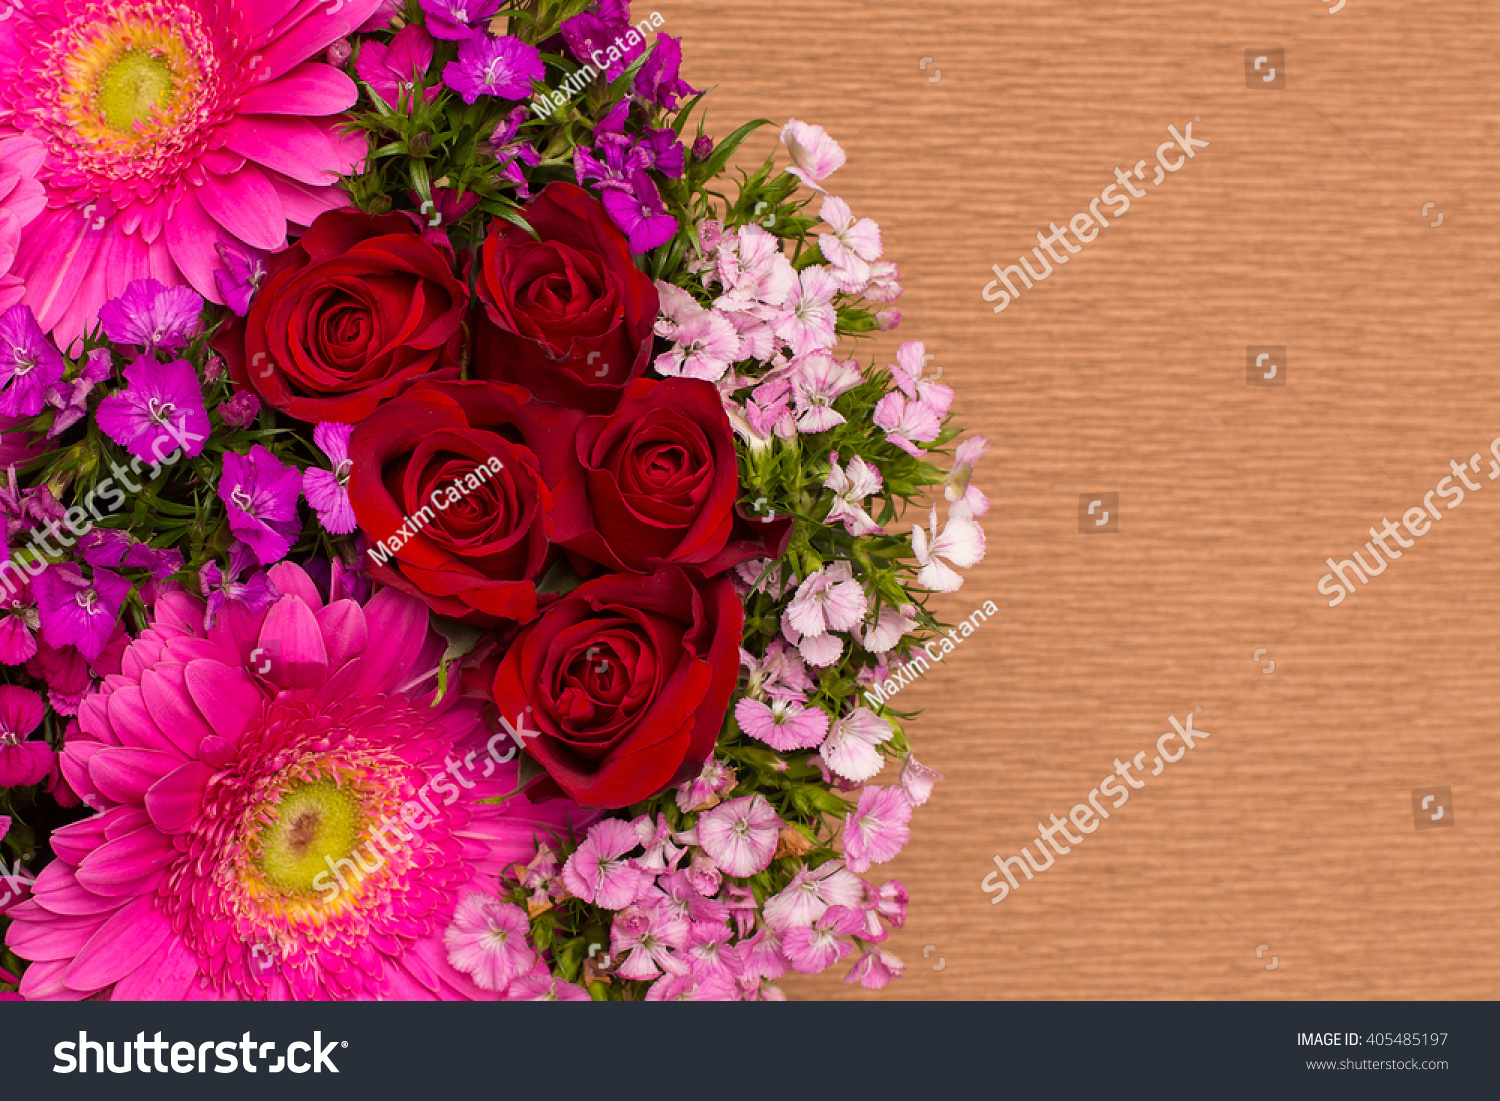 Beautiful Flowers In Decorative Box Design Of Different Types Of